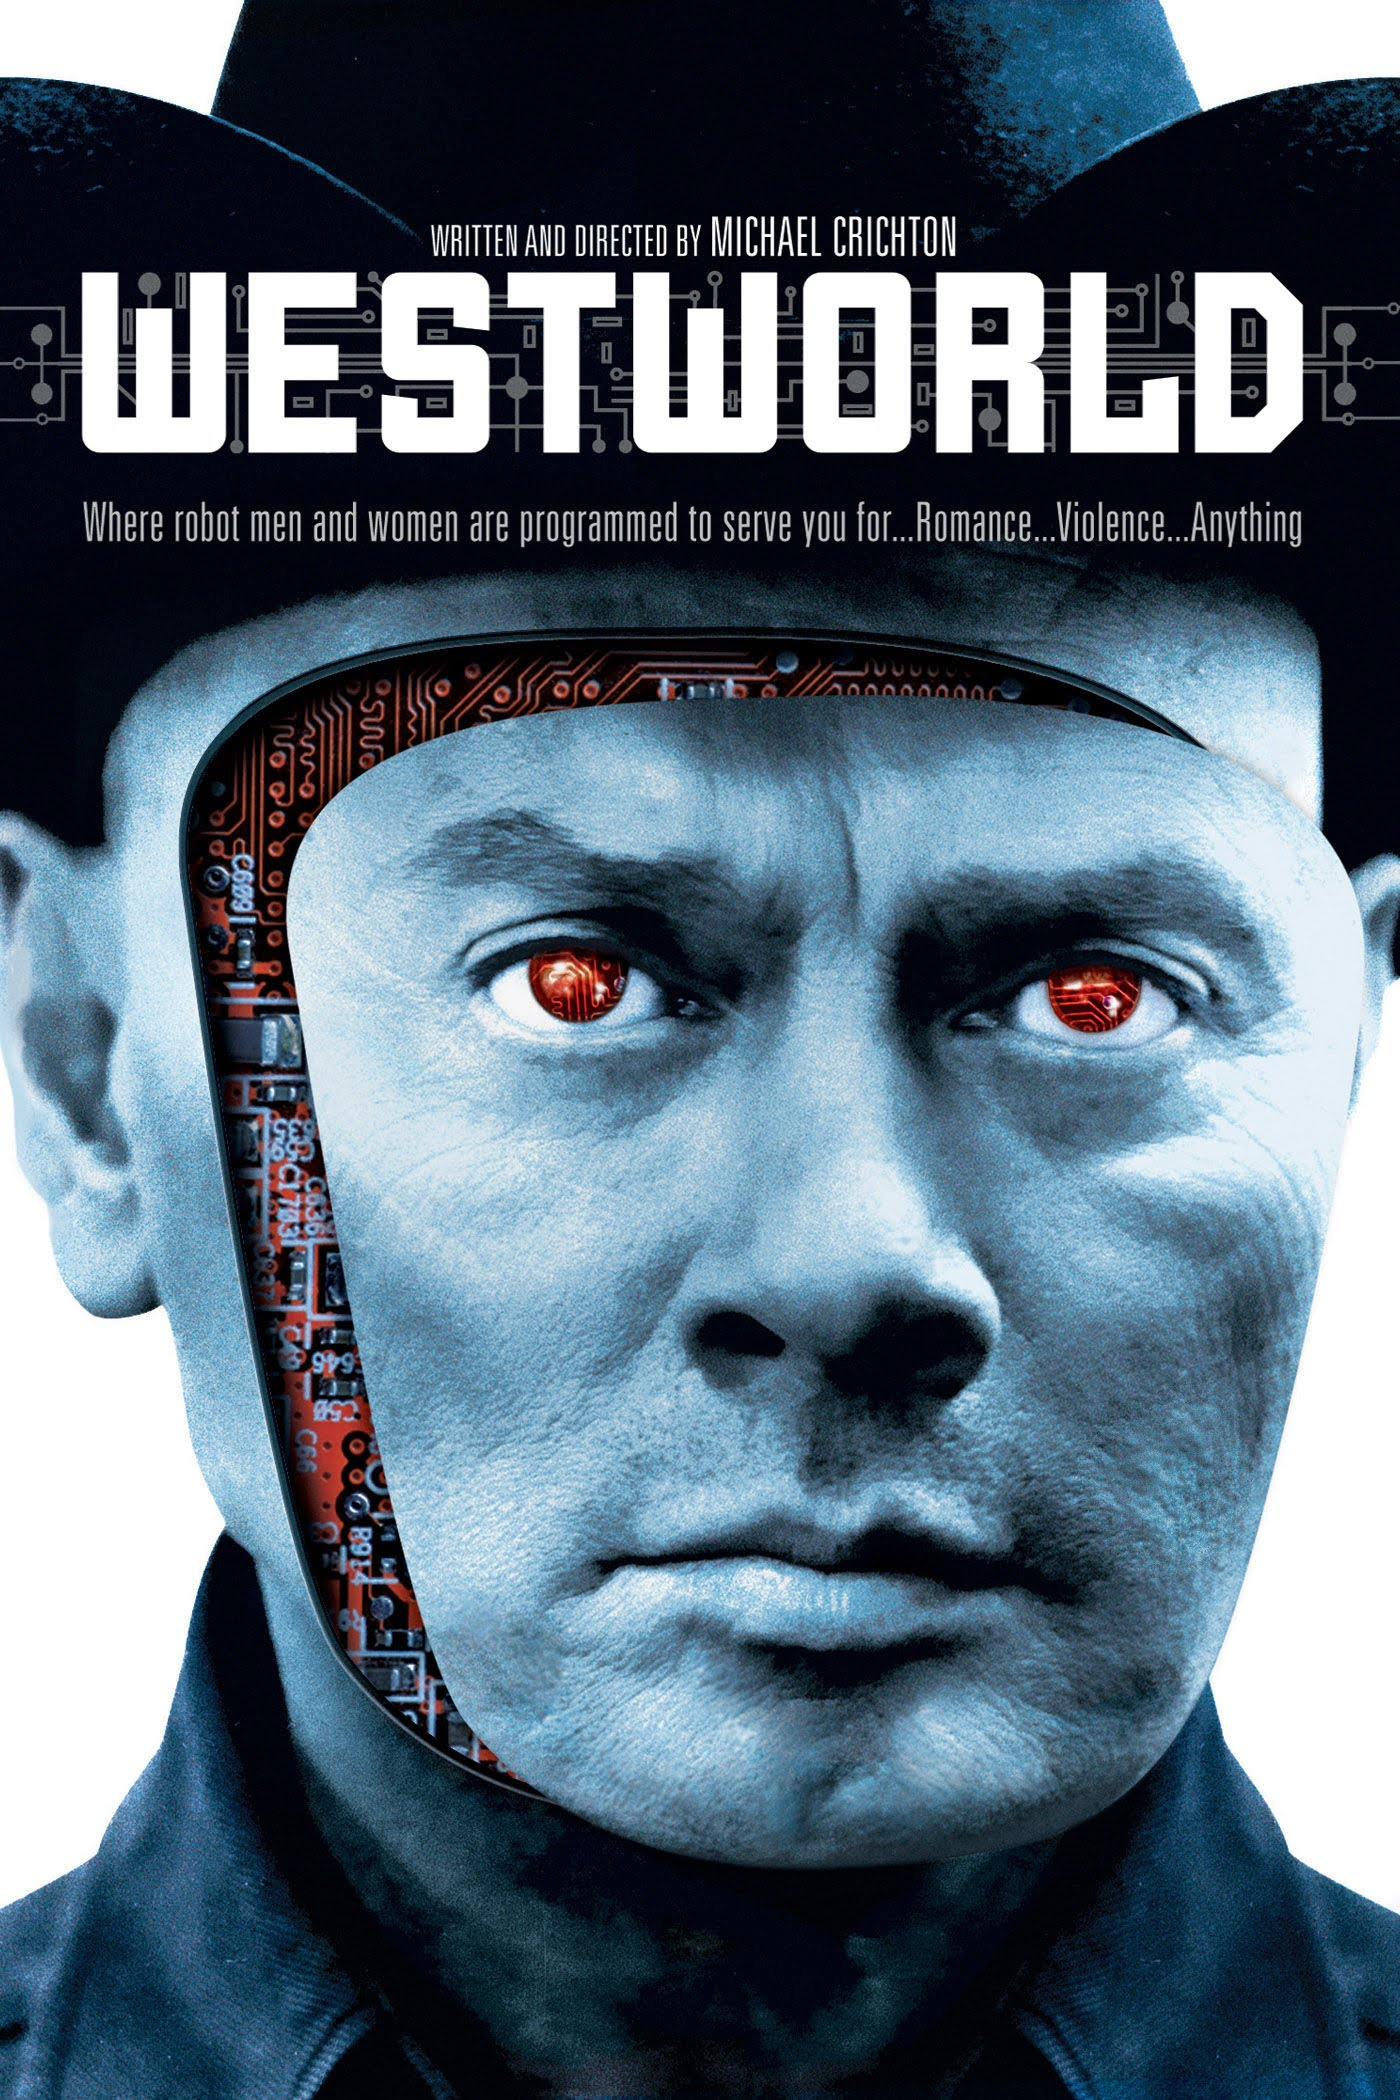 westworld-1973-filming-locations-dvd-cover